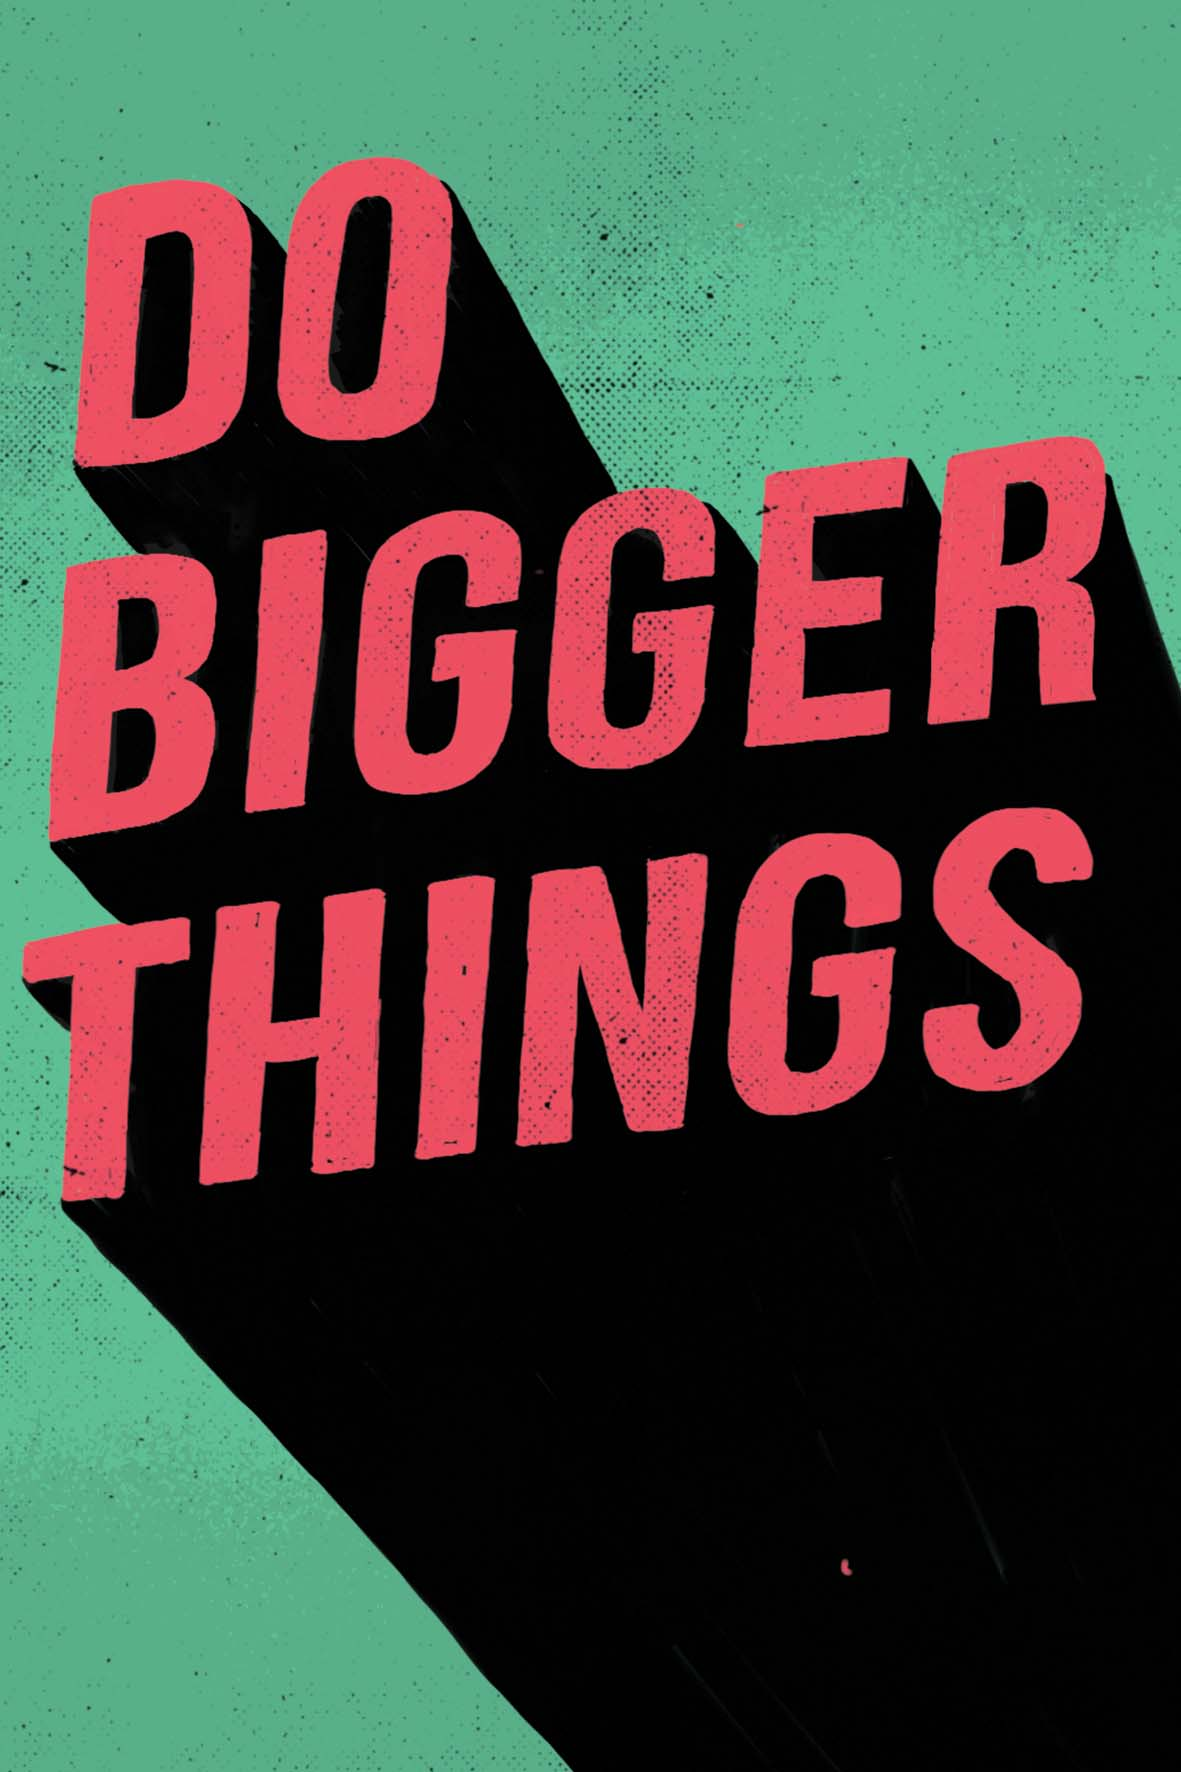 DO BIGGER THINGS